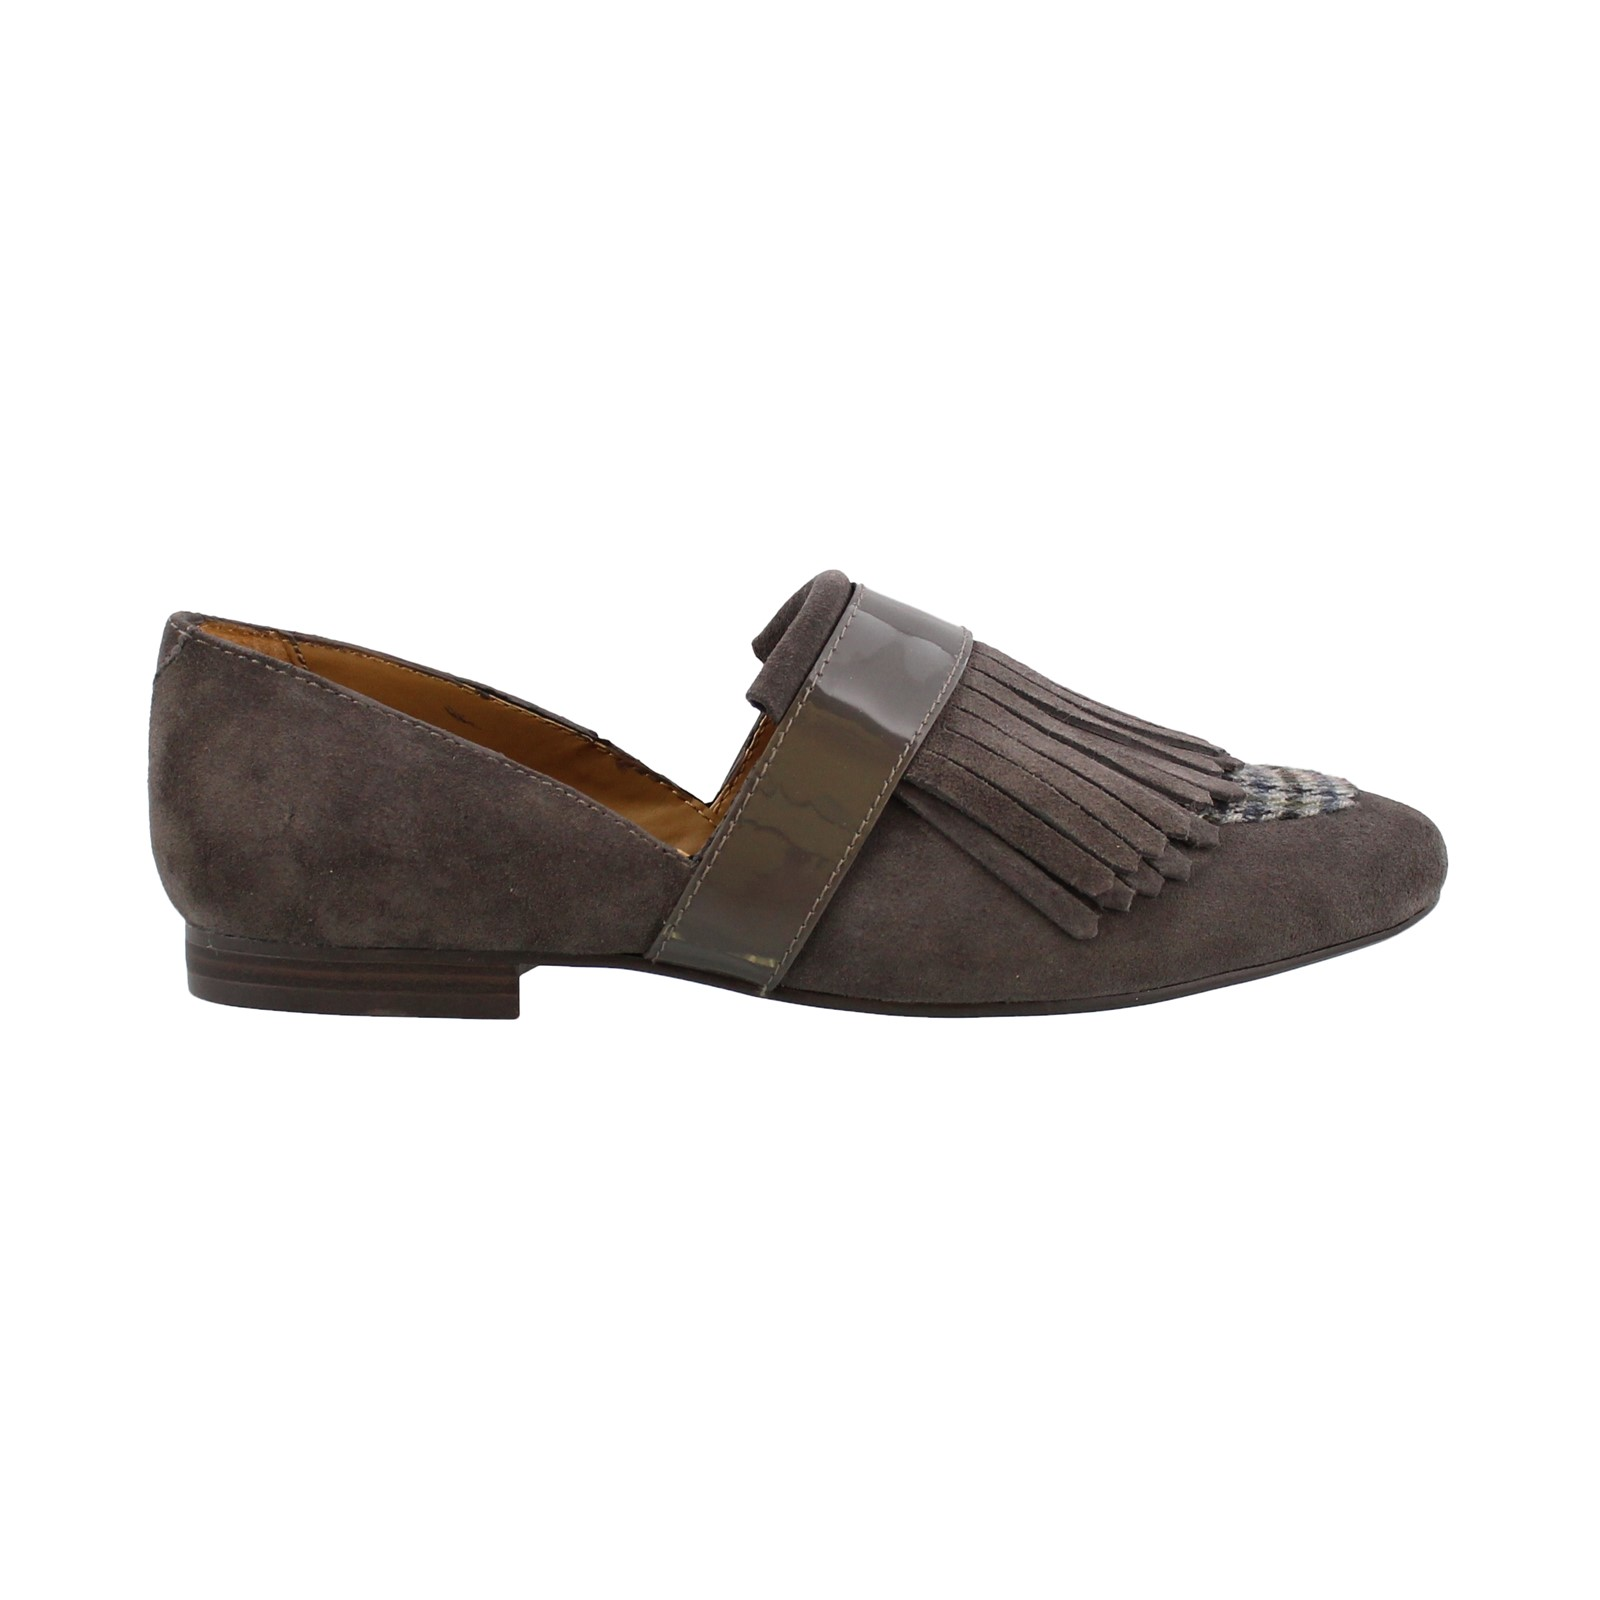 Women's GH Bass, Harlow Loafer